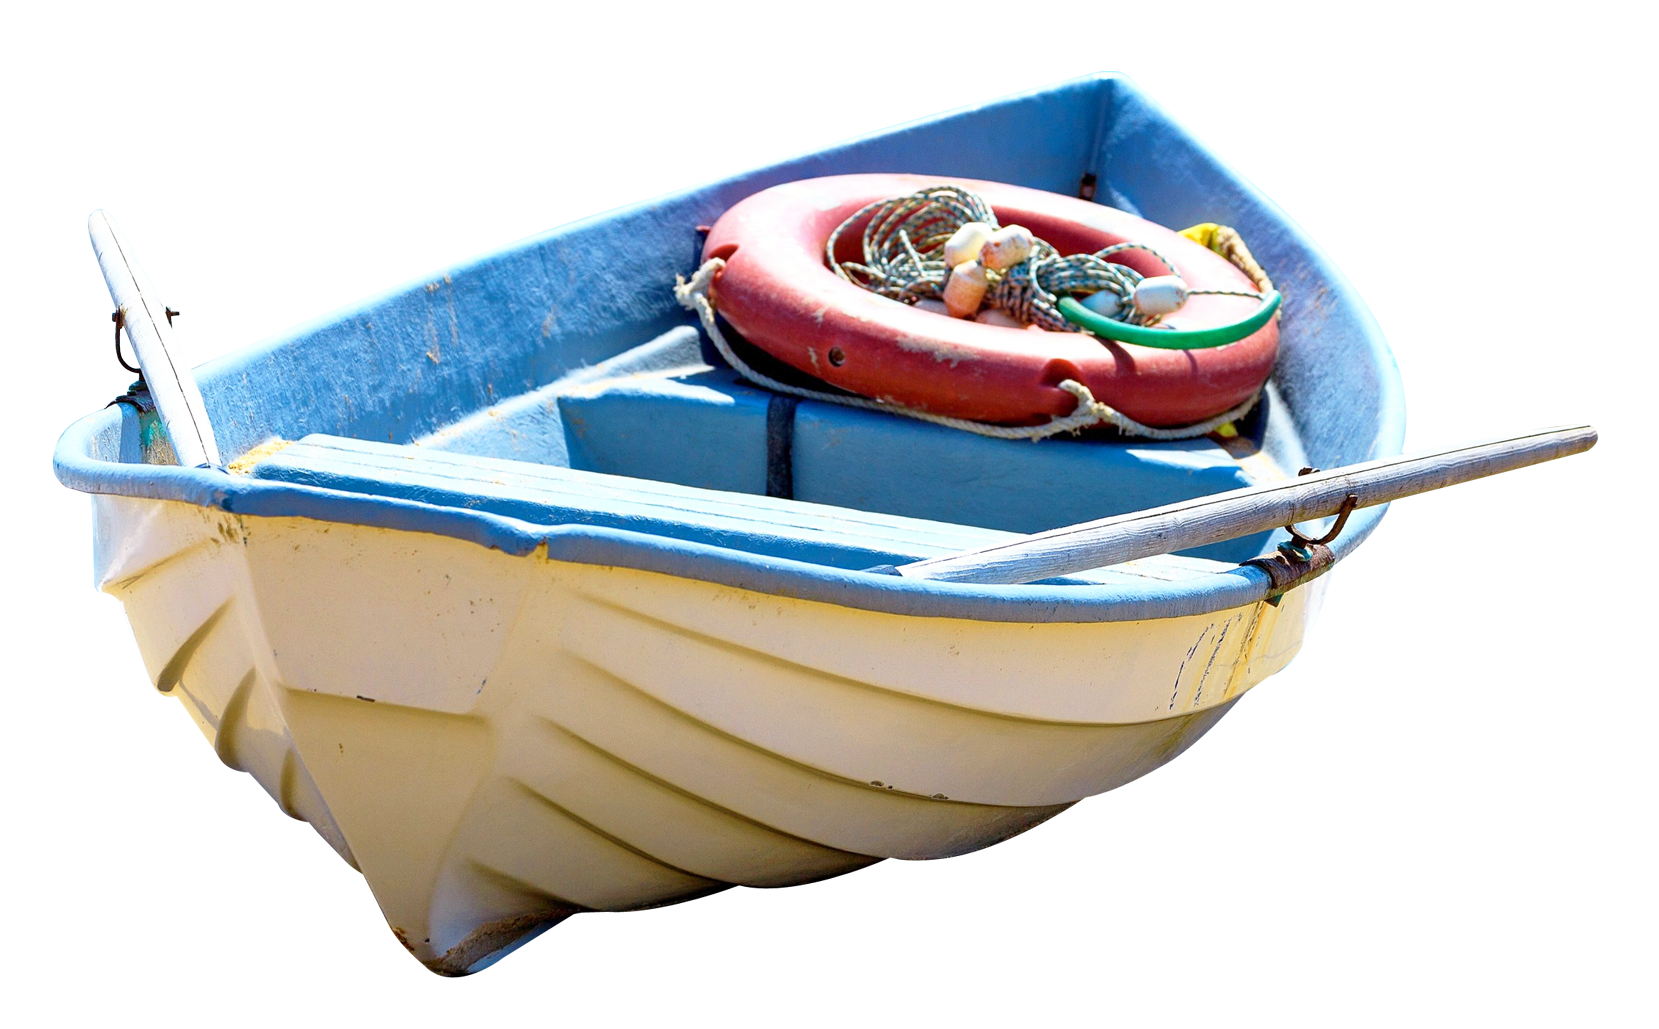 Transparent boats water. Boat png images free